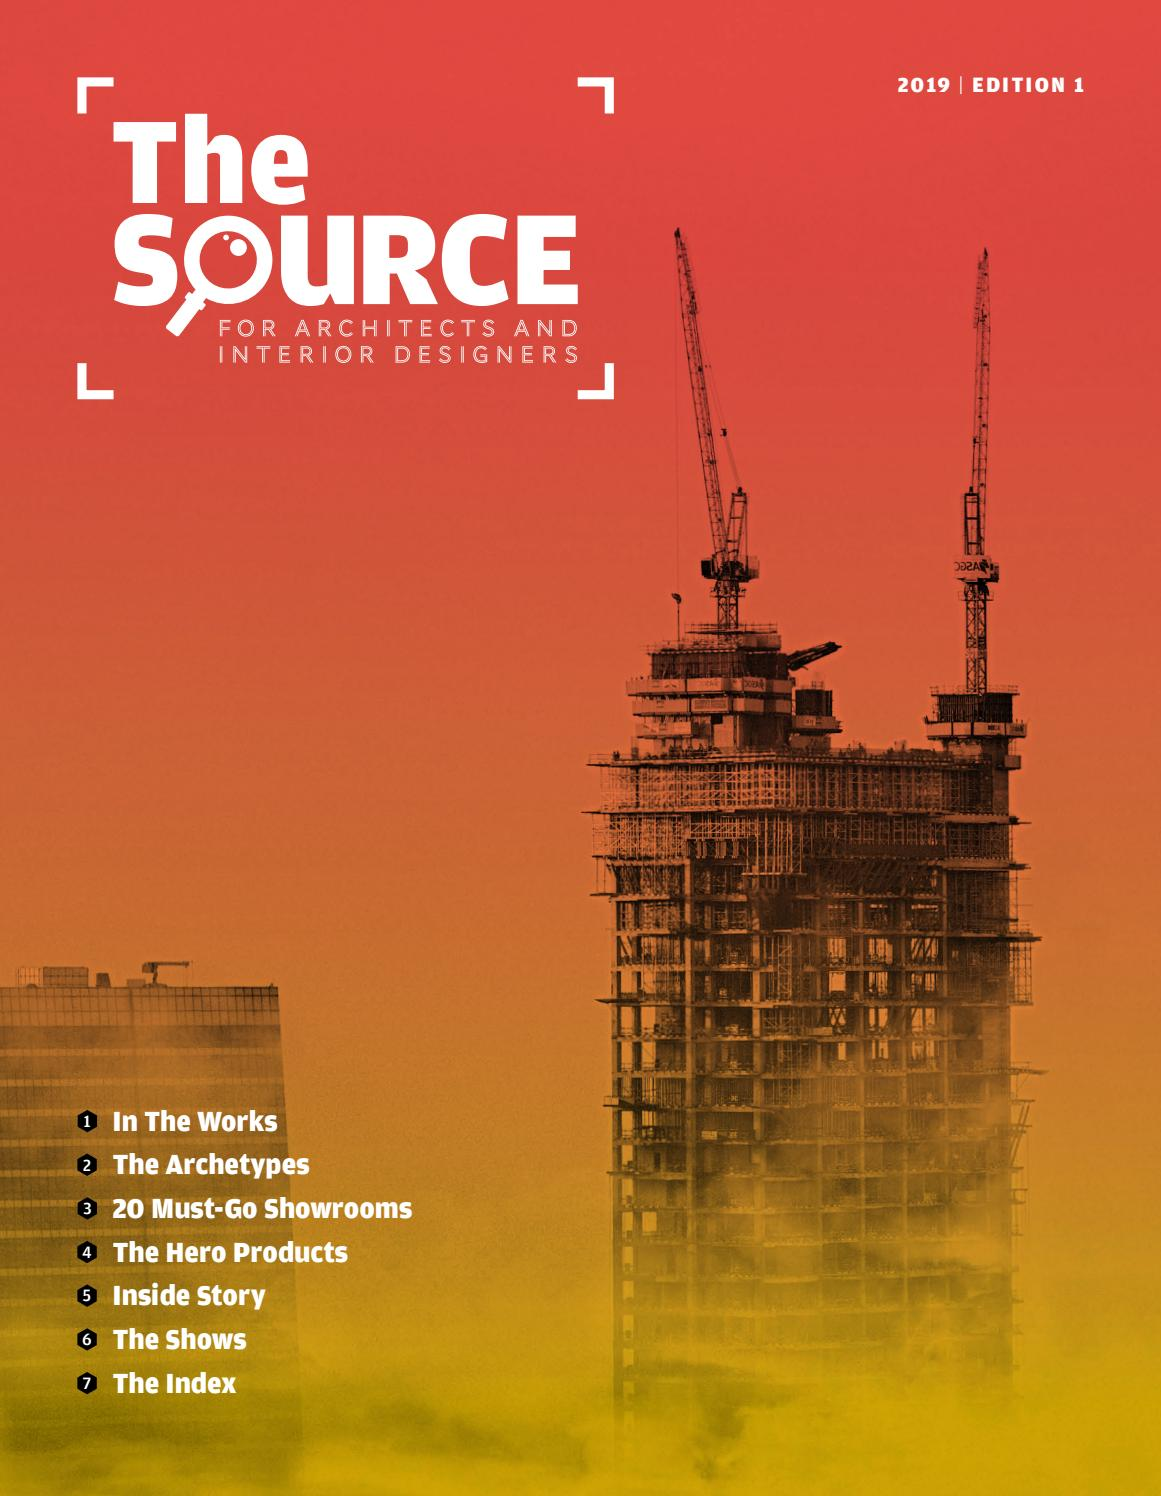 The Source 2019 Edition 1 By Visiononehk Issuu